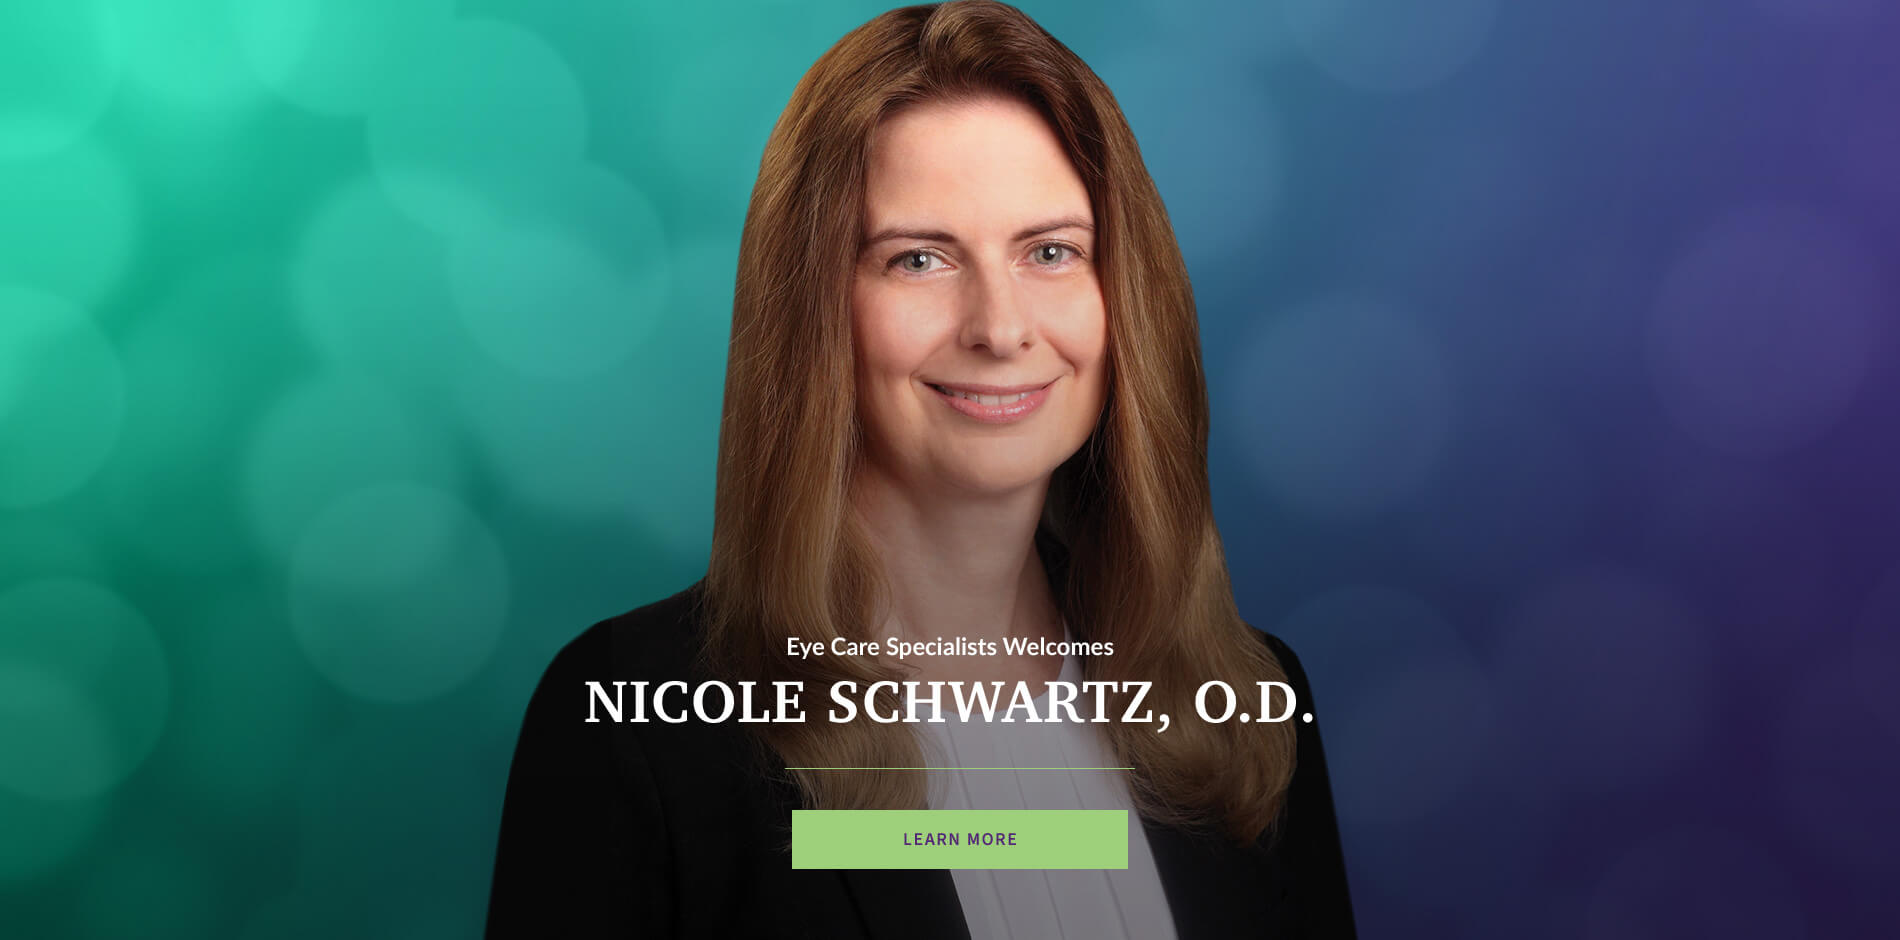 Eye Care Specialists Welcomes Nicole Schwartz, O.D.